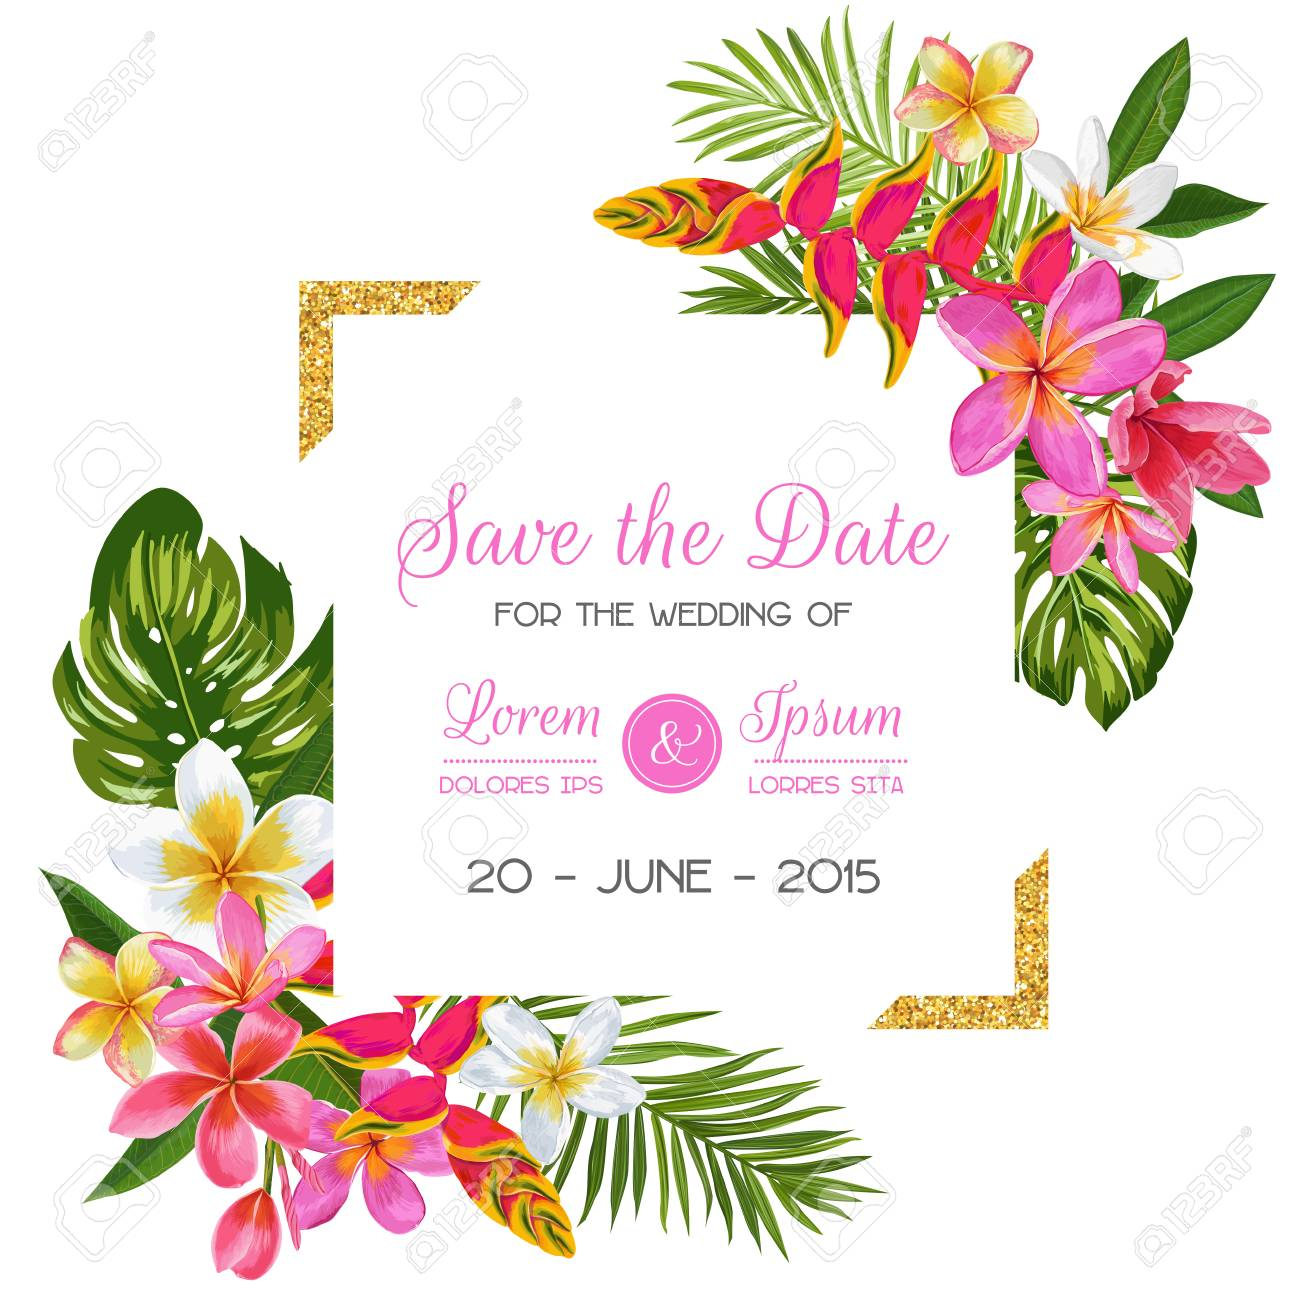 Wedding Invitation Template with Flowers. Tropical Floral Save the Date Card. Exotic Flower Romantic Design for Greeting Postcard, Birthday, Anniversary. Vector illustration - 101116673